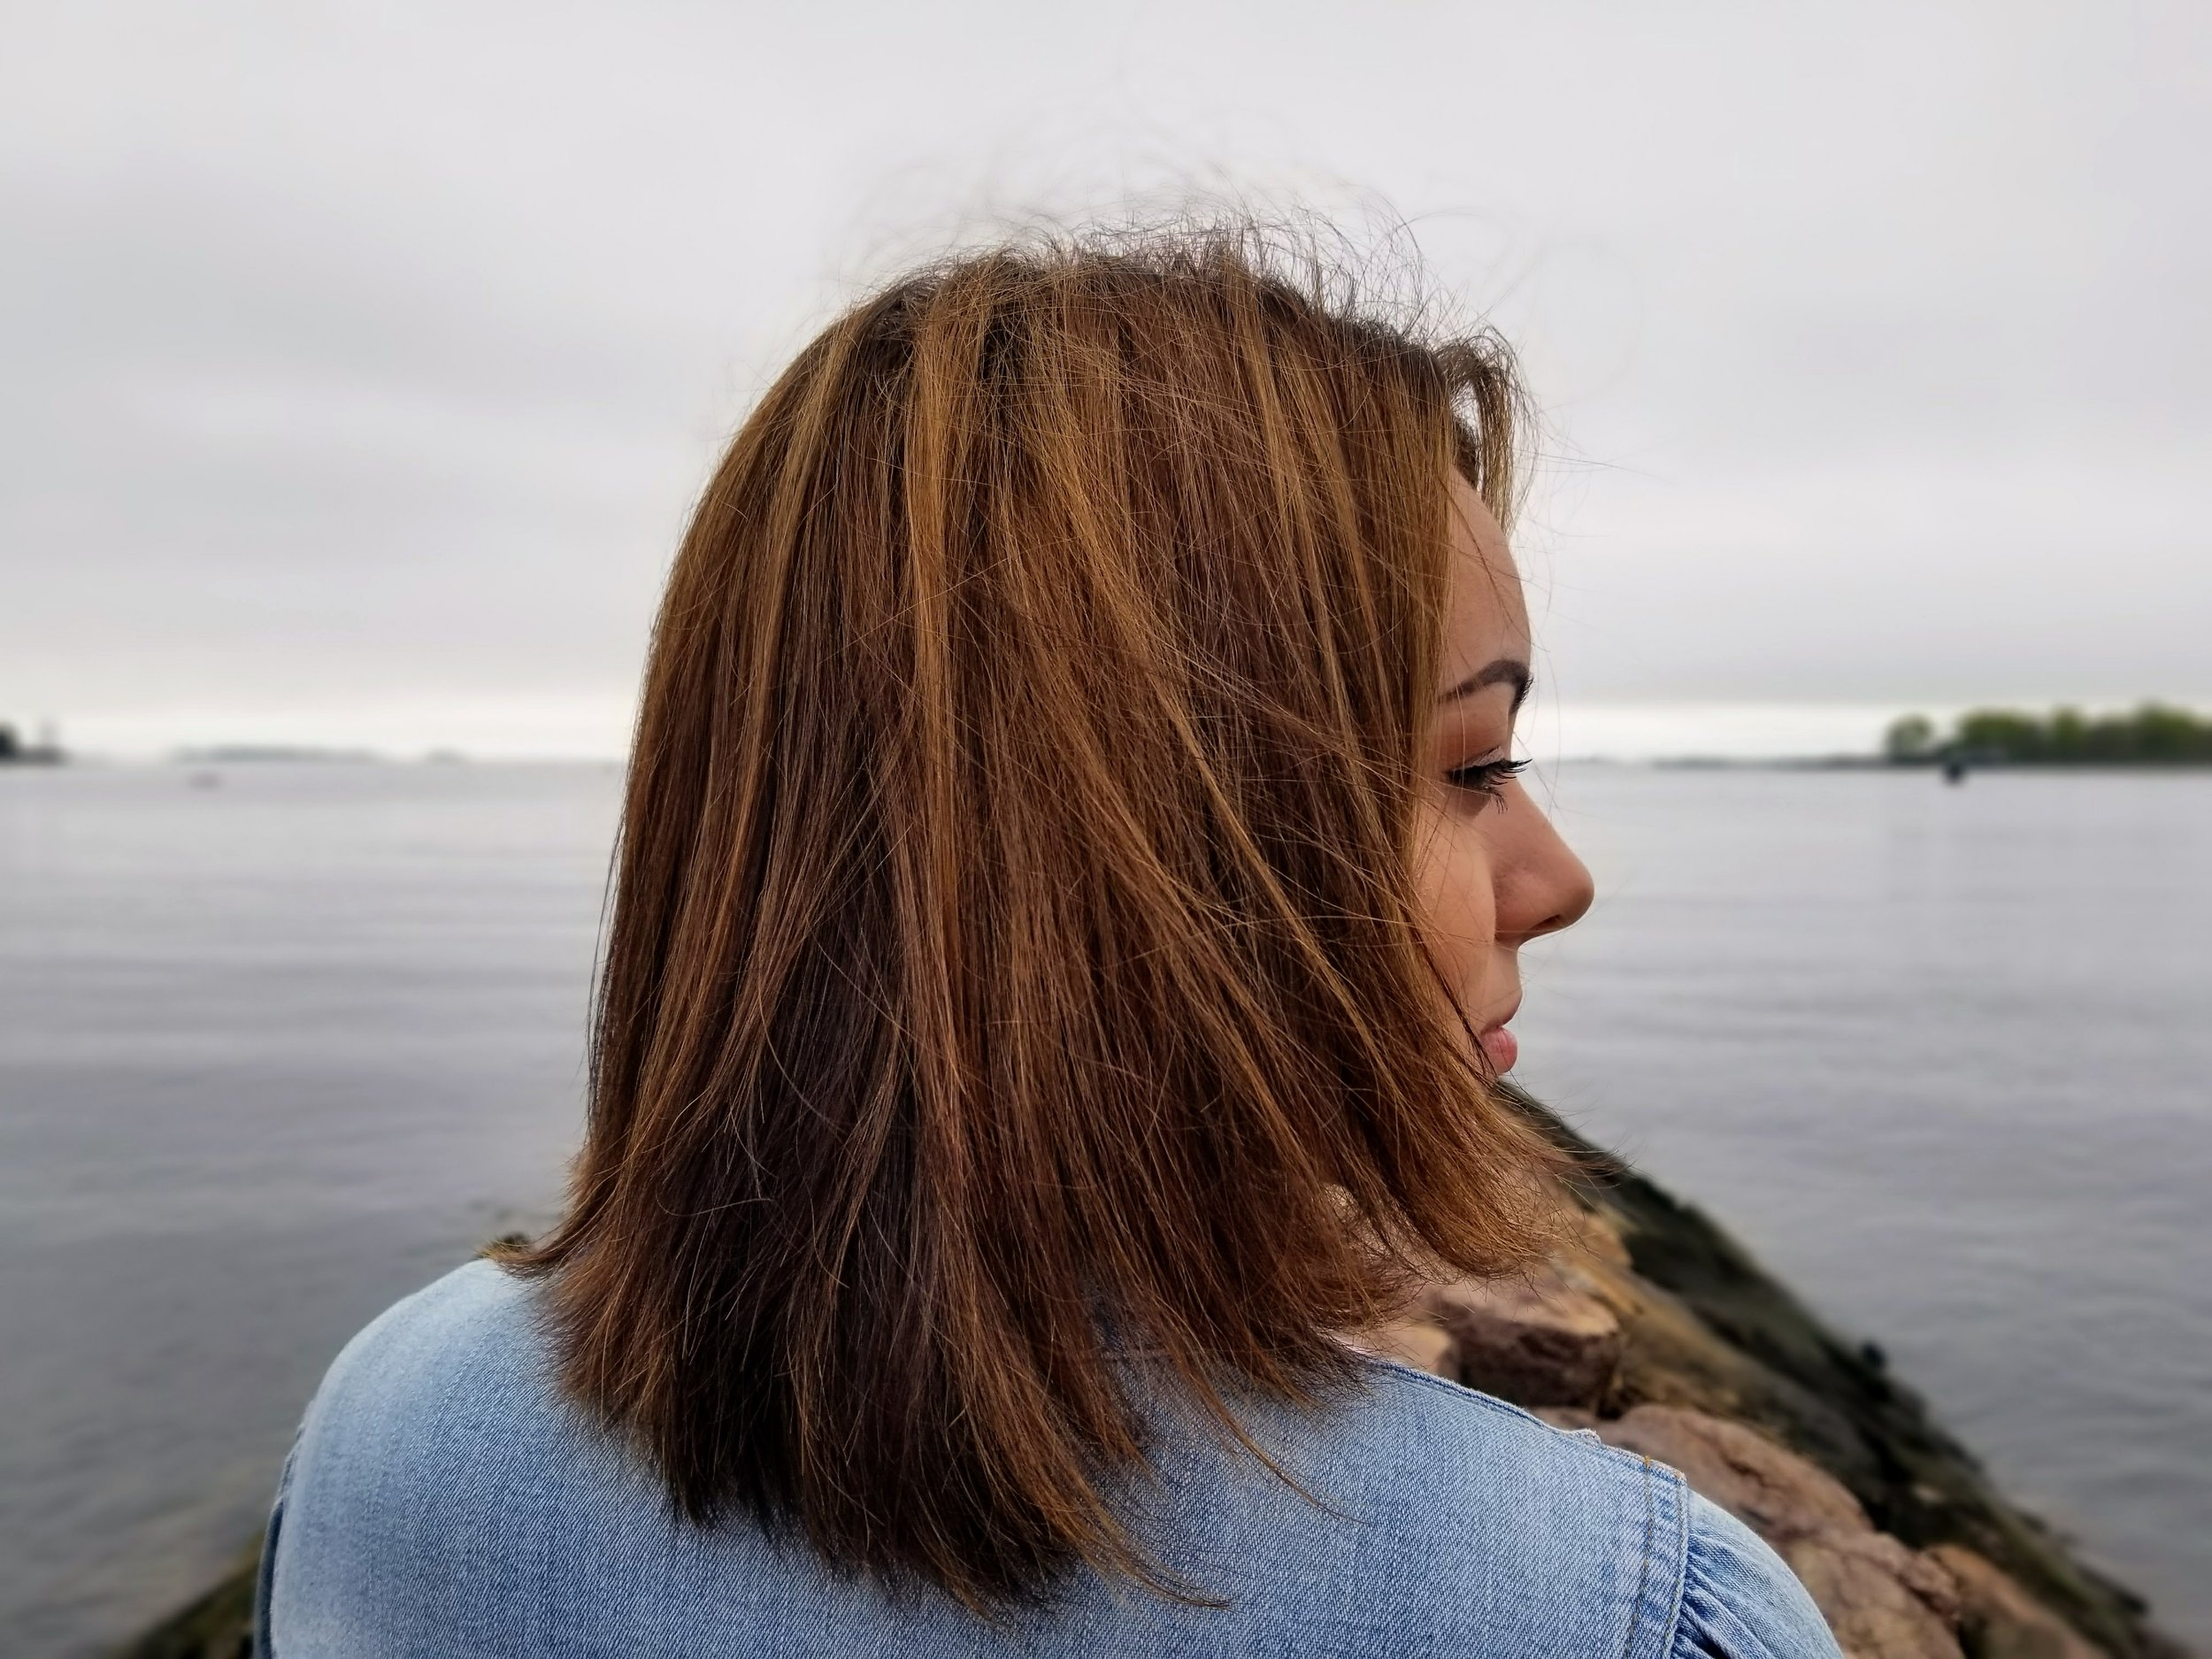 A close up of a girl looking to the side with the beach in front of her.